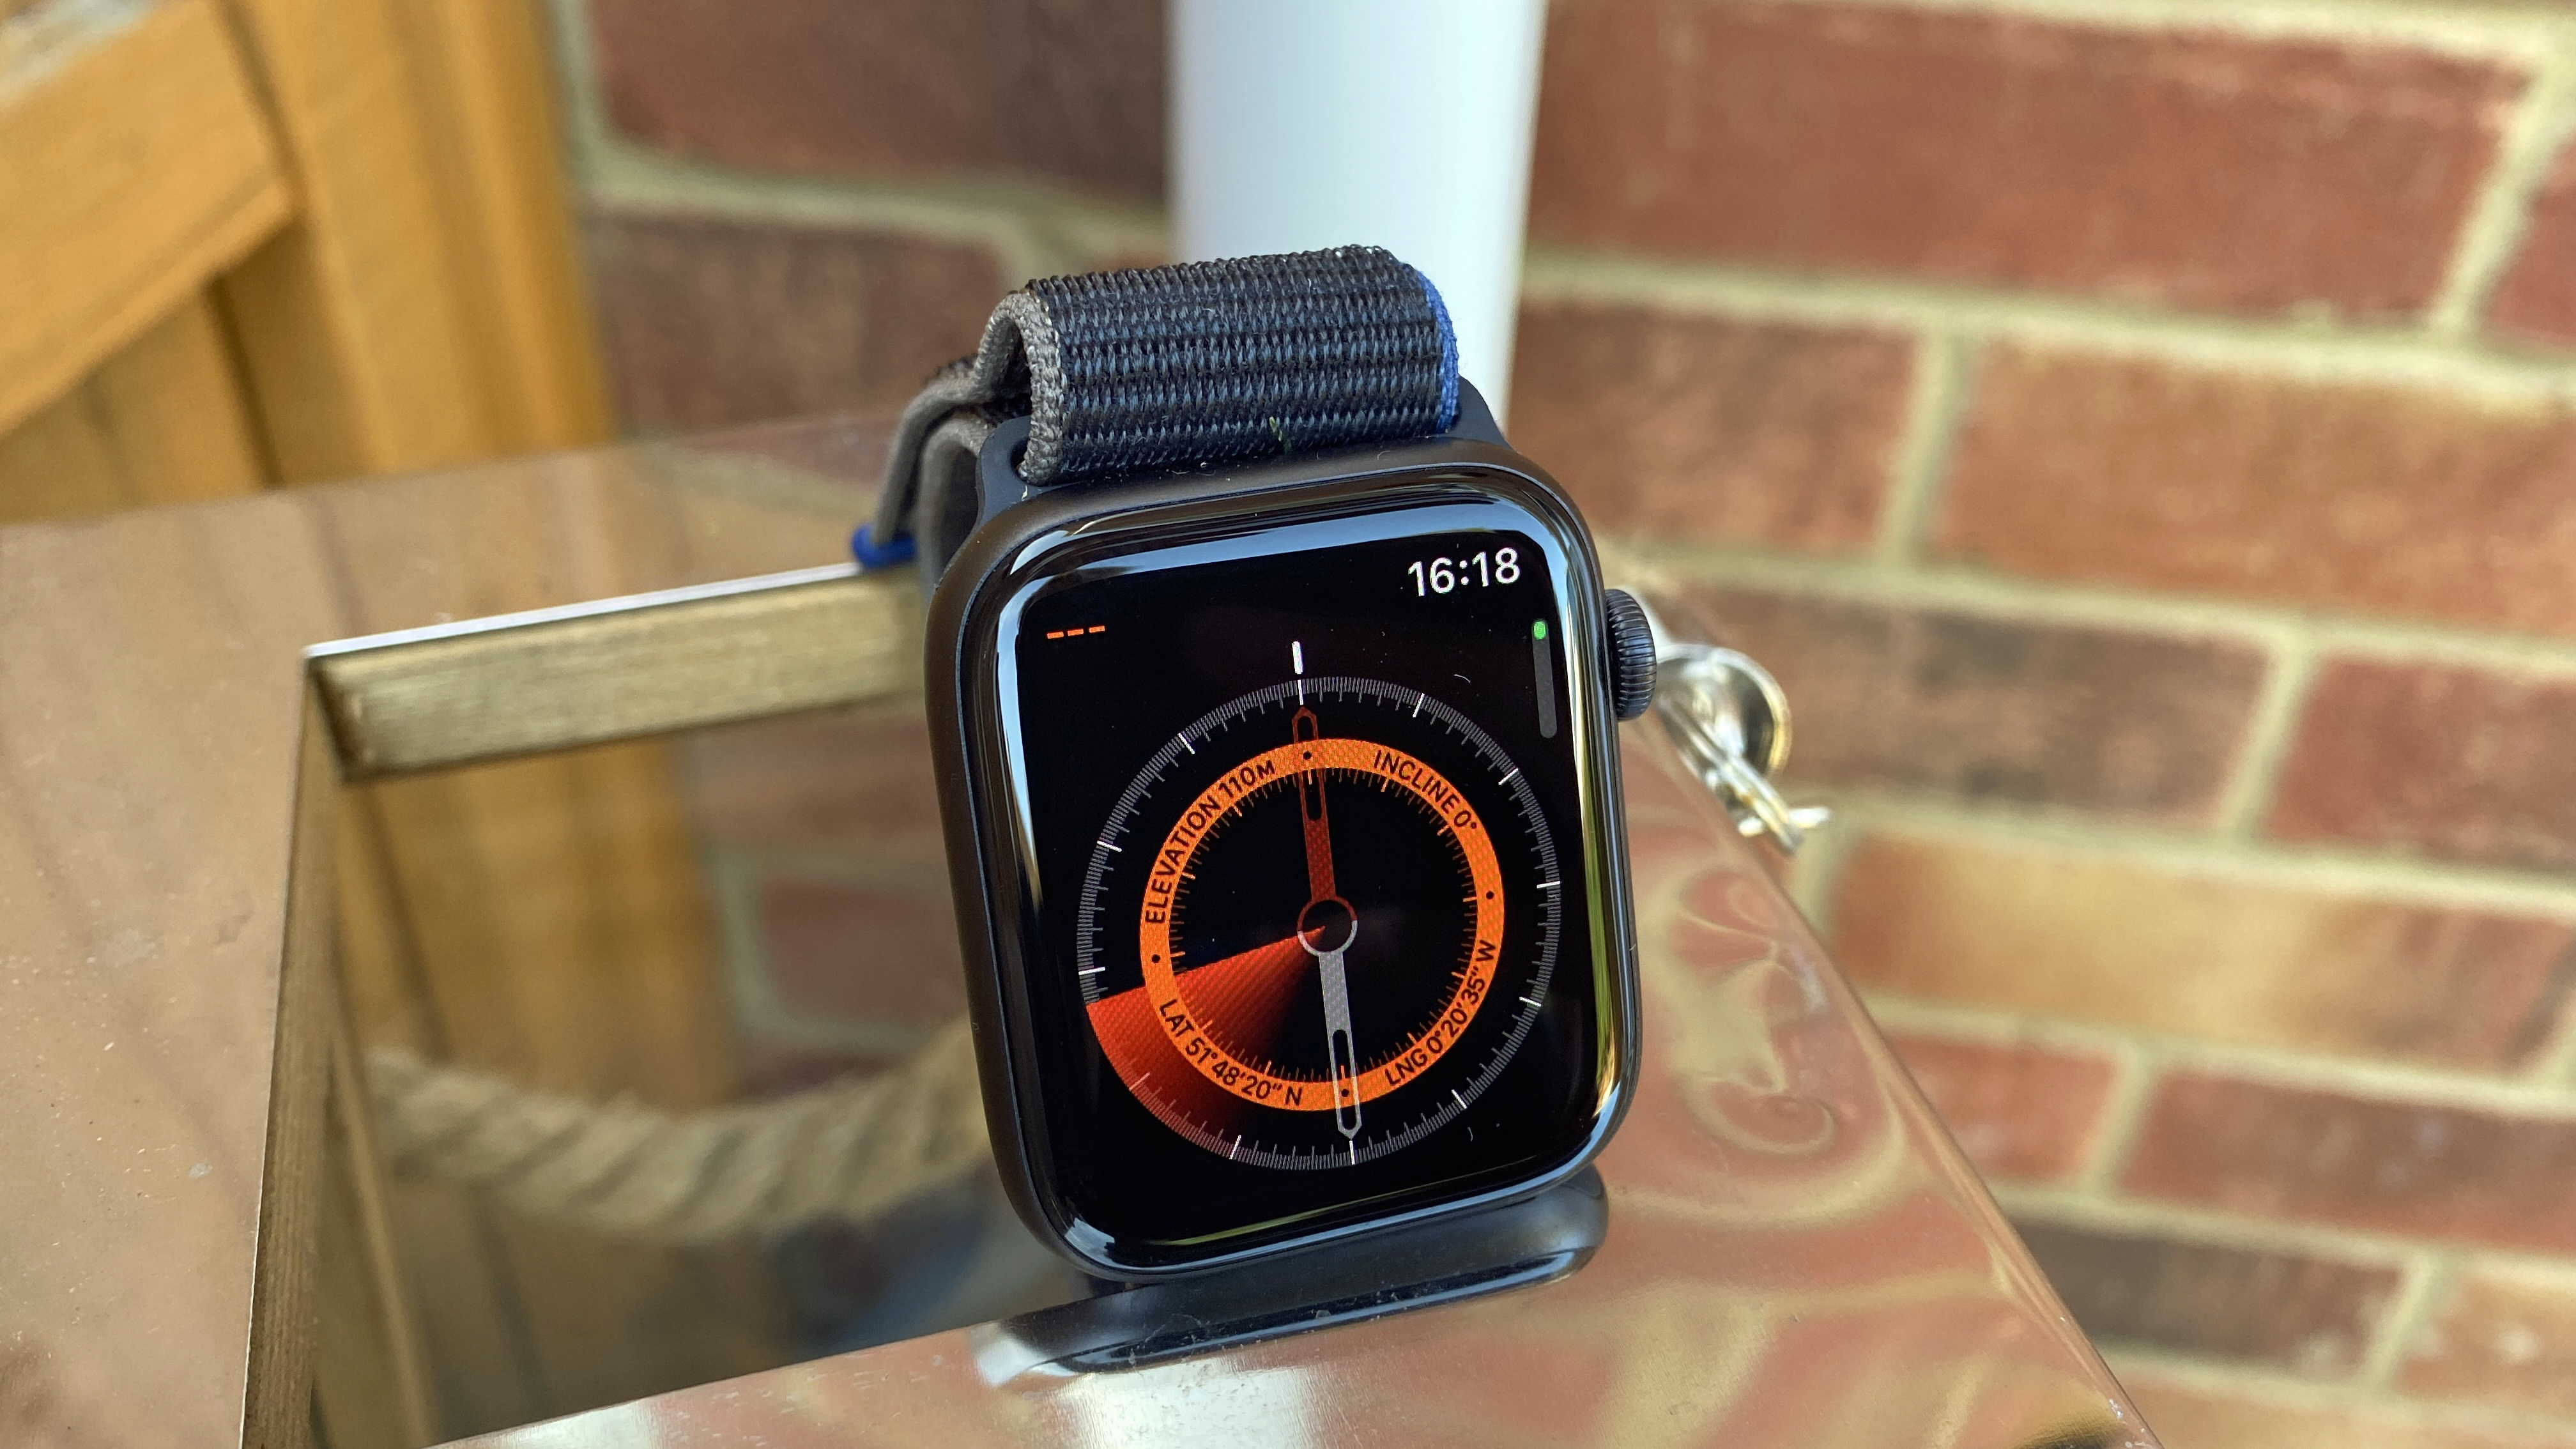 Apple Watch SE: with a compass watch face